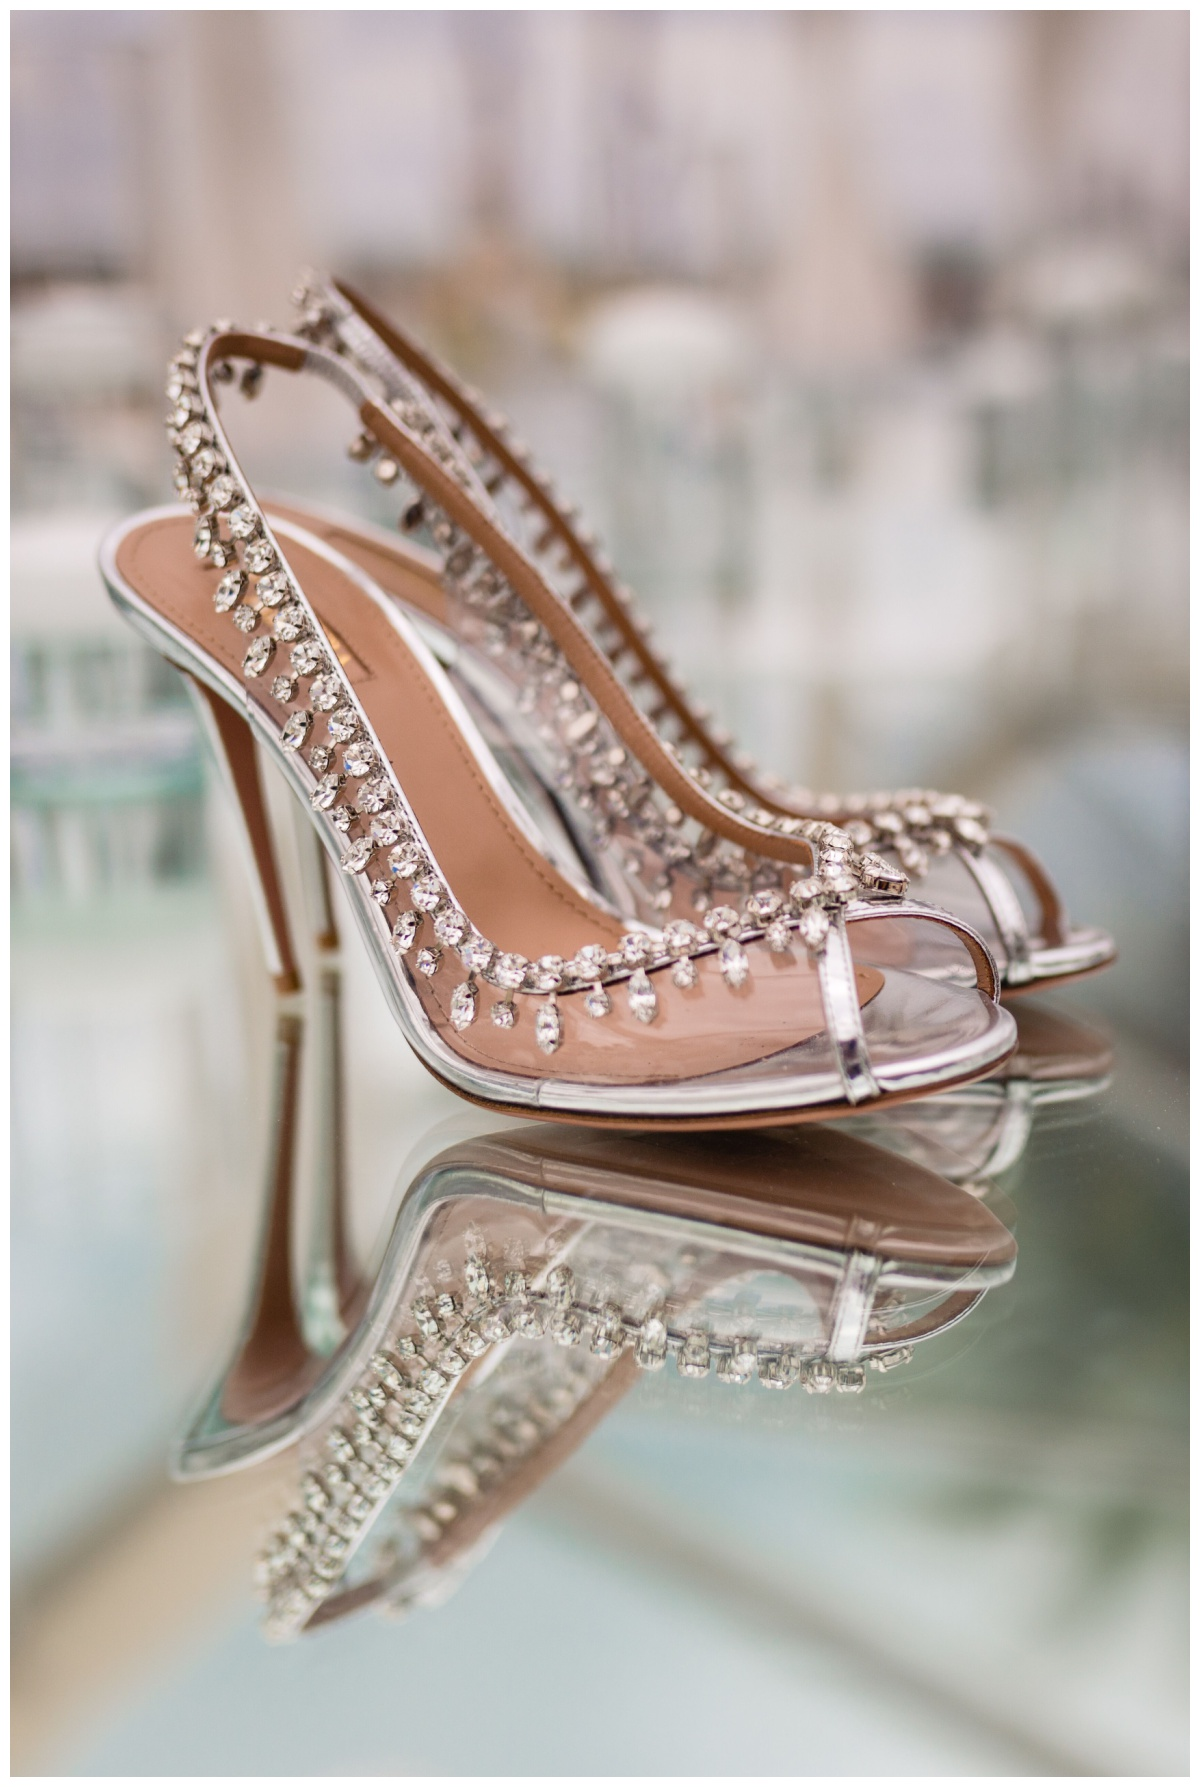 Florida Keys wedding shoes